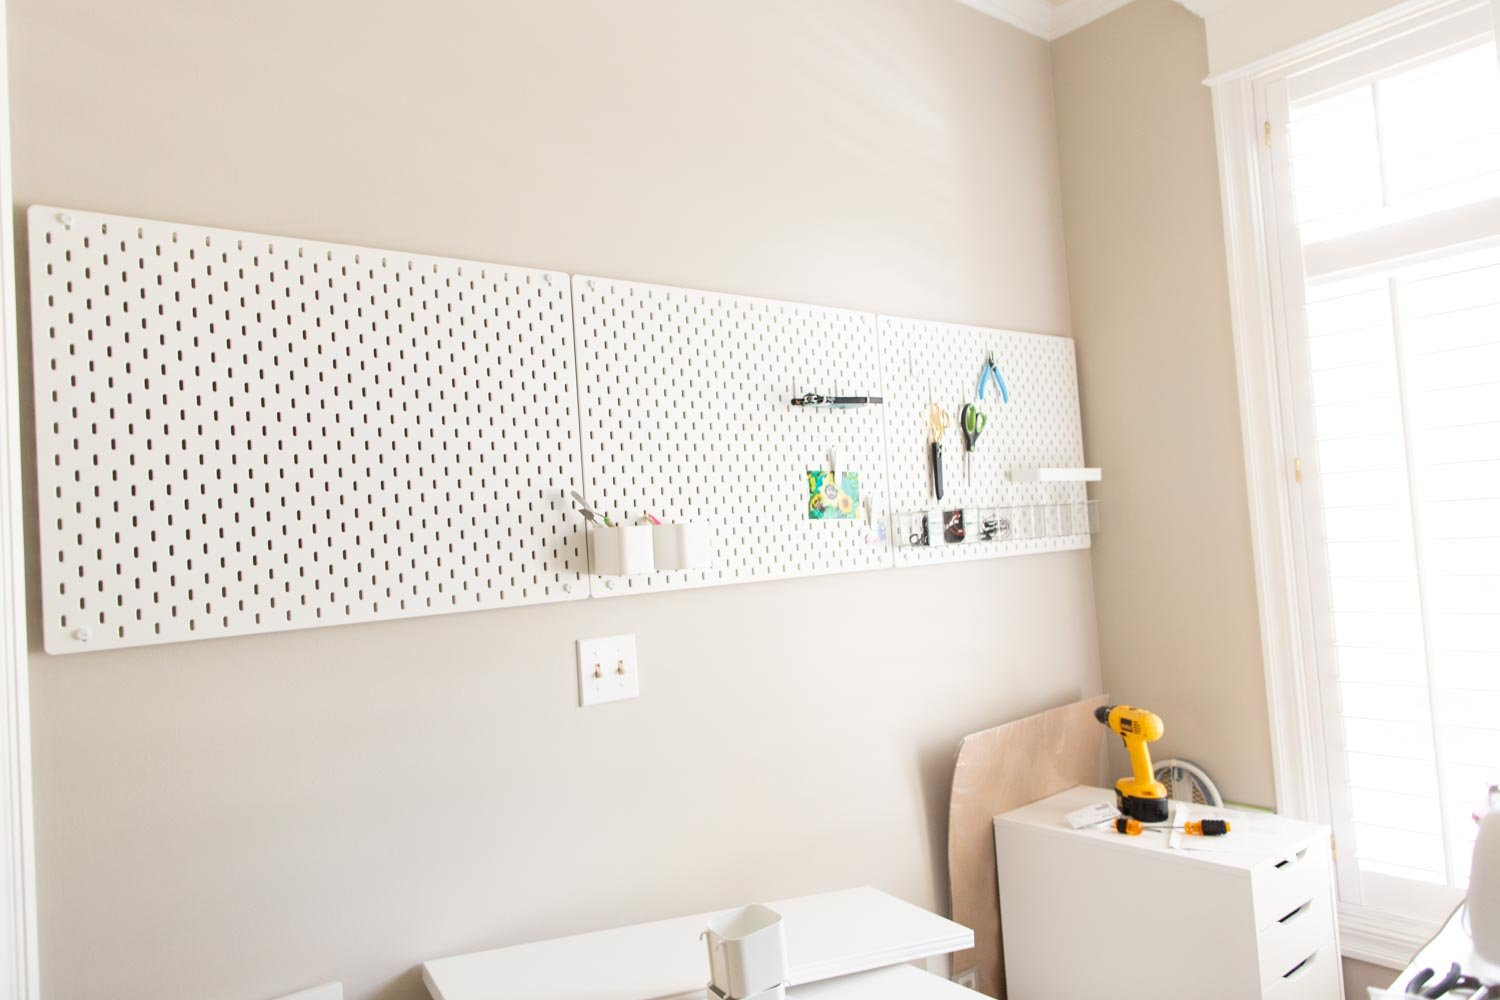 pegboard placement and mounting